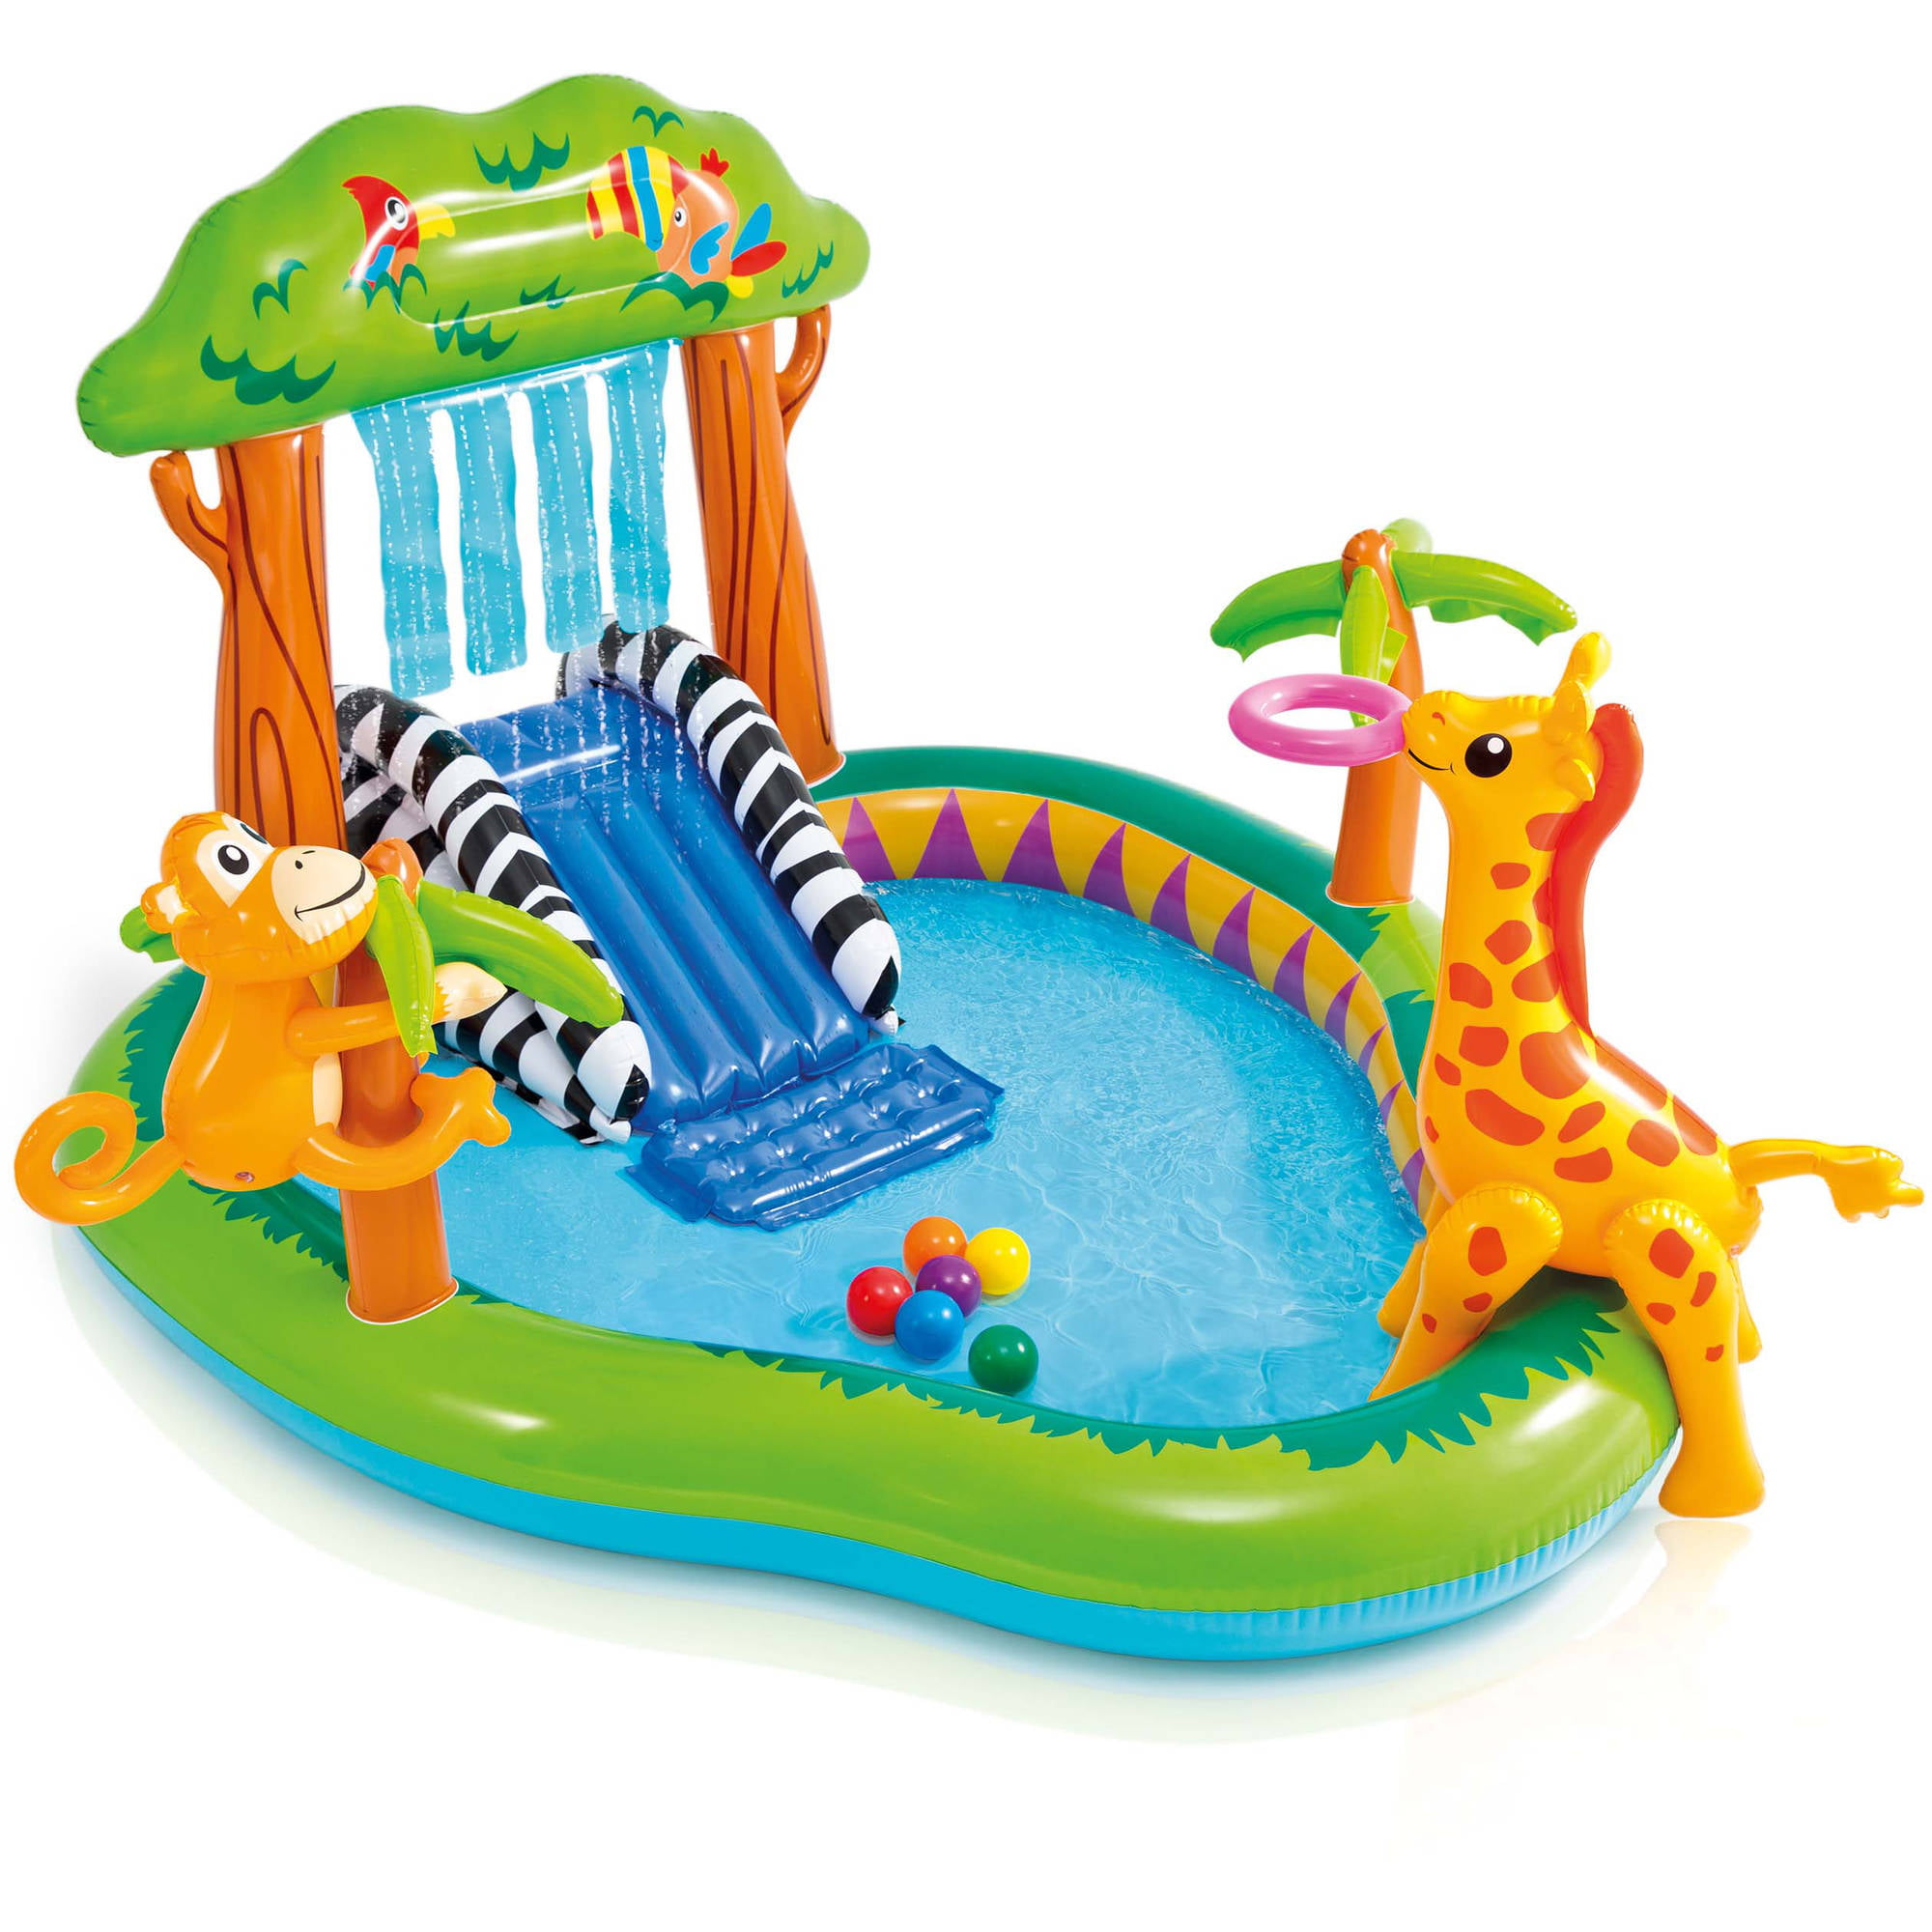 Intex Inflatable Sunset Glow Colorful Kiddie Pool